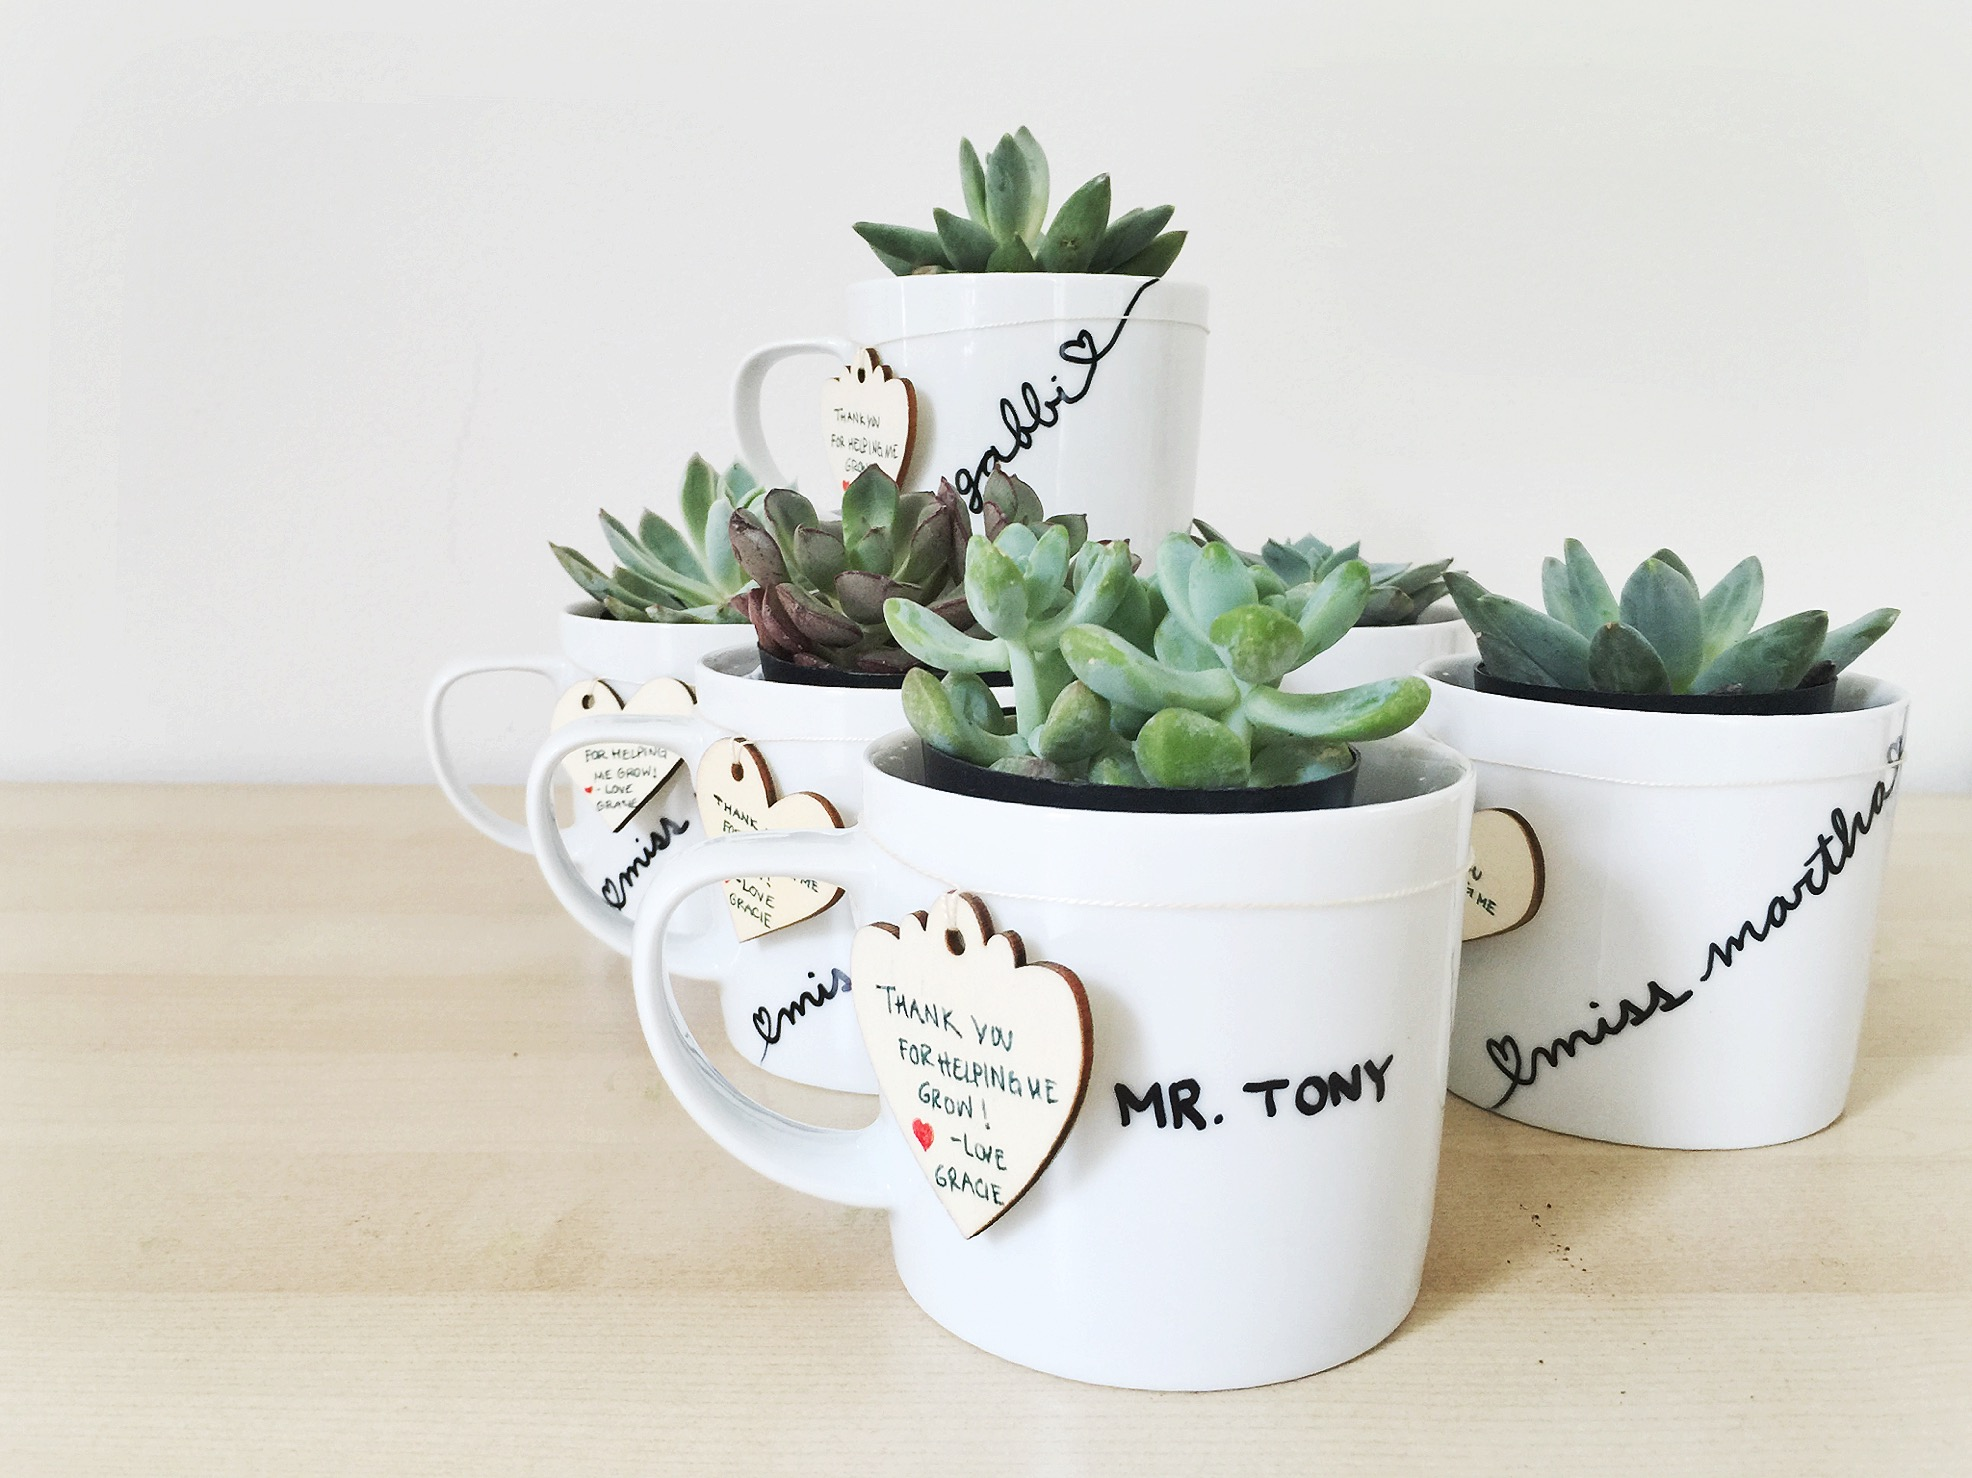 DIY Potted Succulents in Coffee Mugs